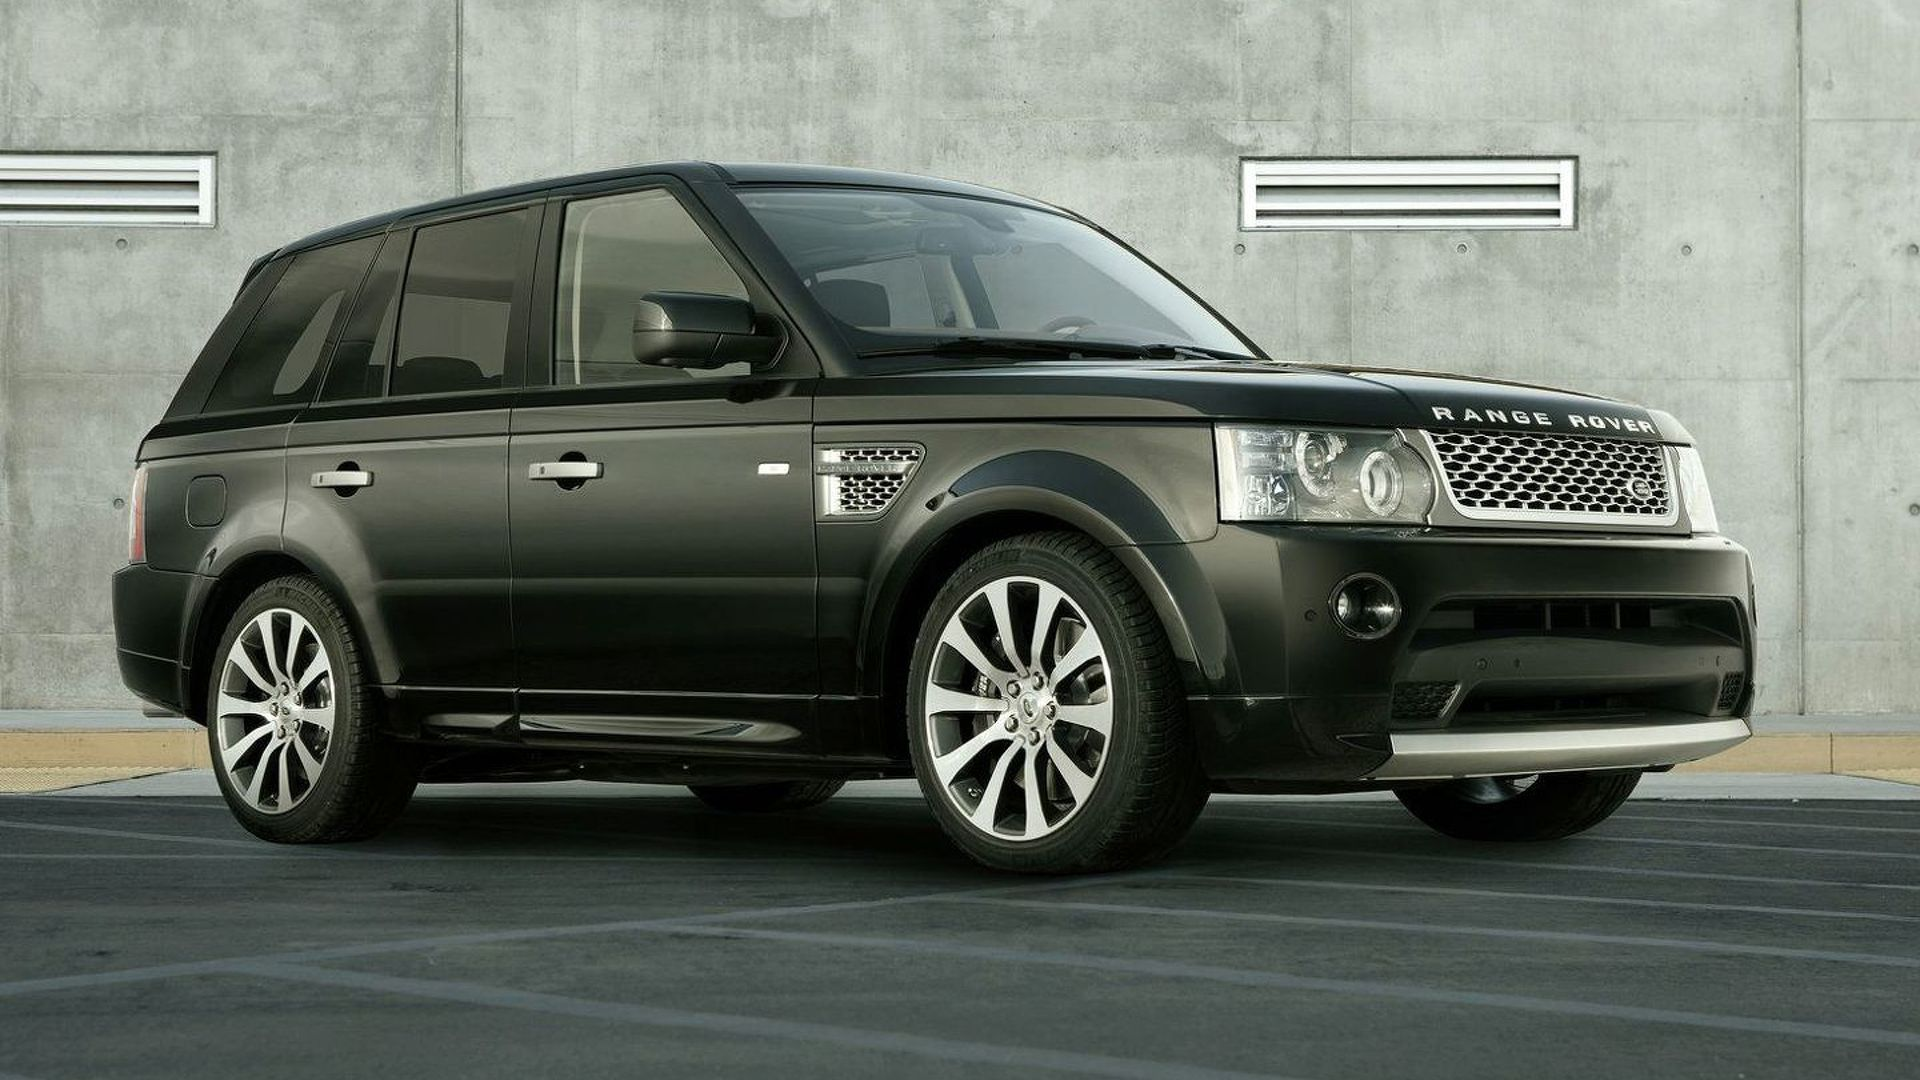 https://cdn.motor1.com/images/mgl/kAL6e/s1/2009-188816-range-rover-sport-autobiography-limited-edition1.jpg